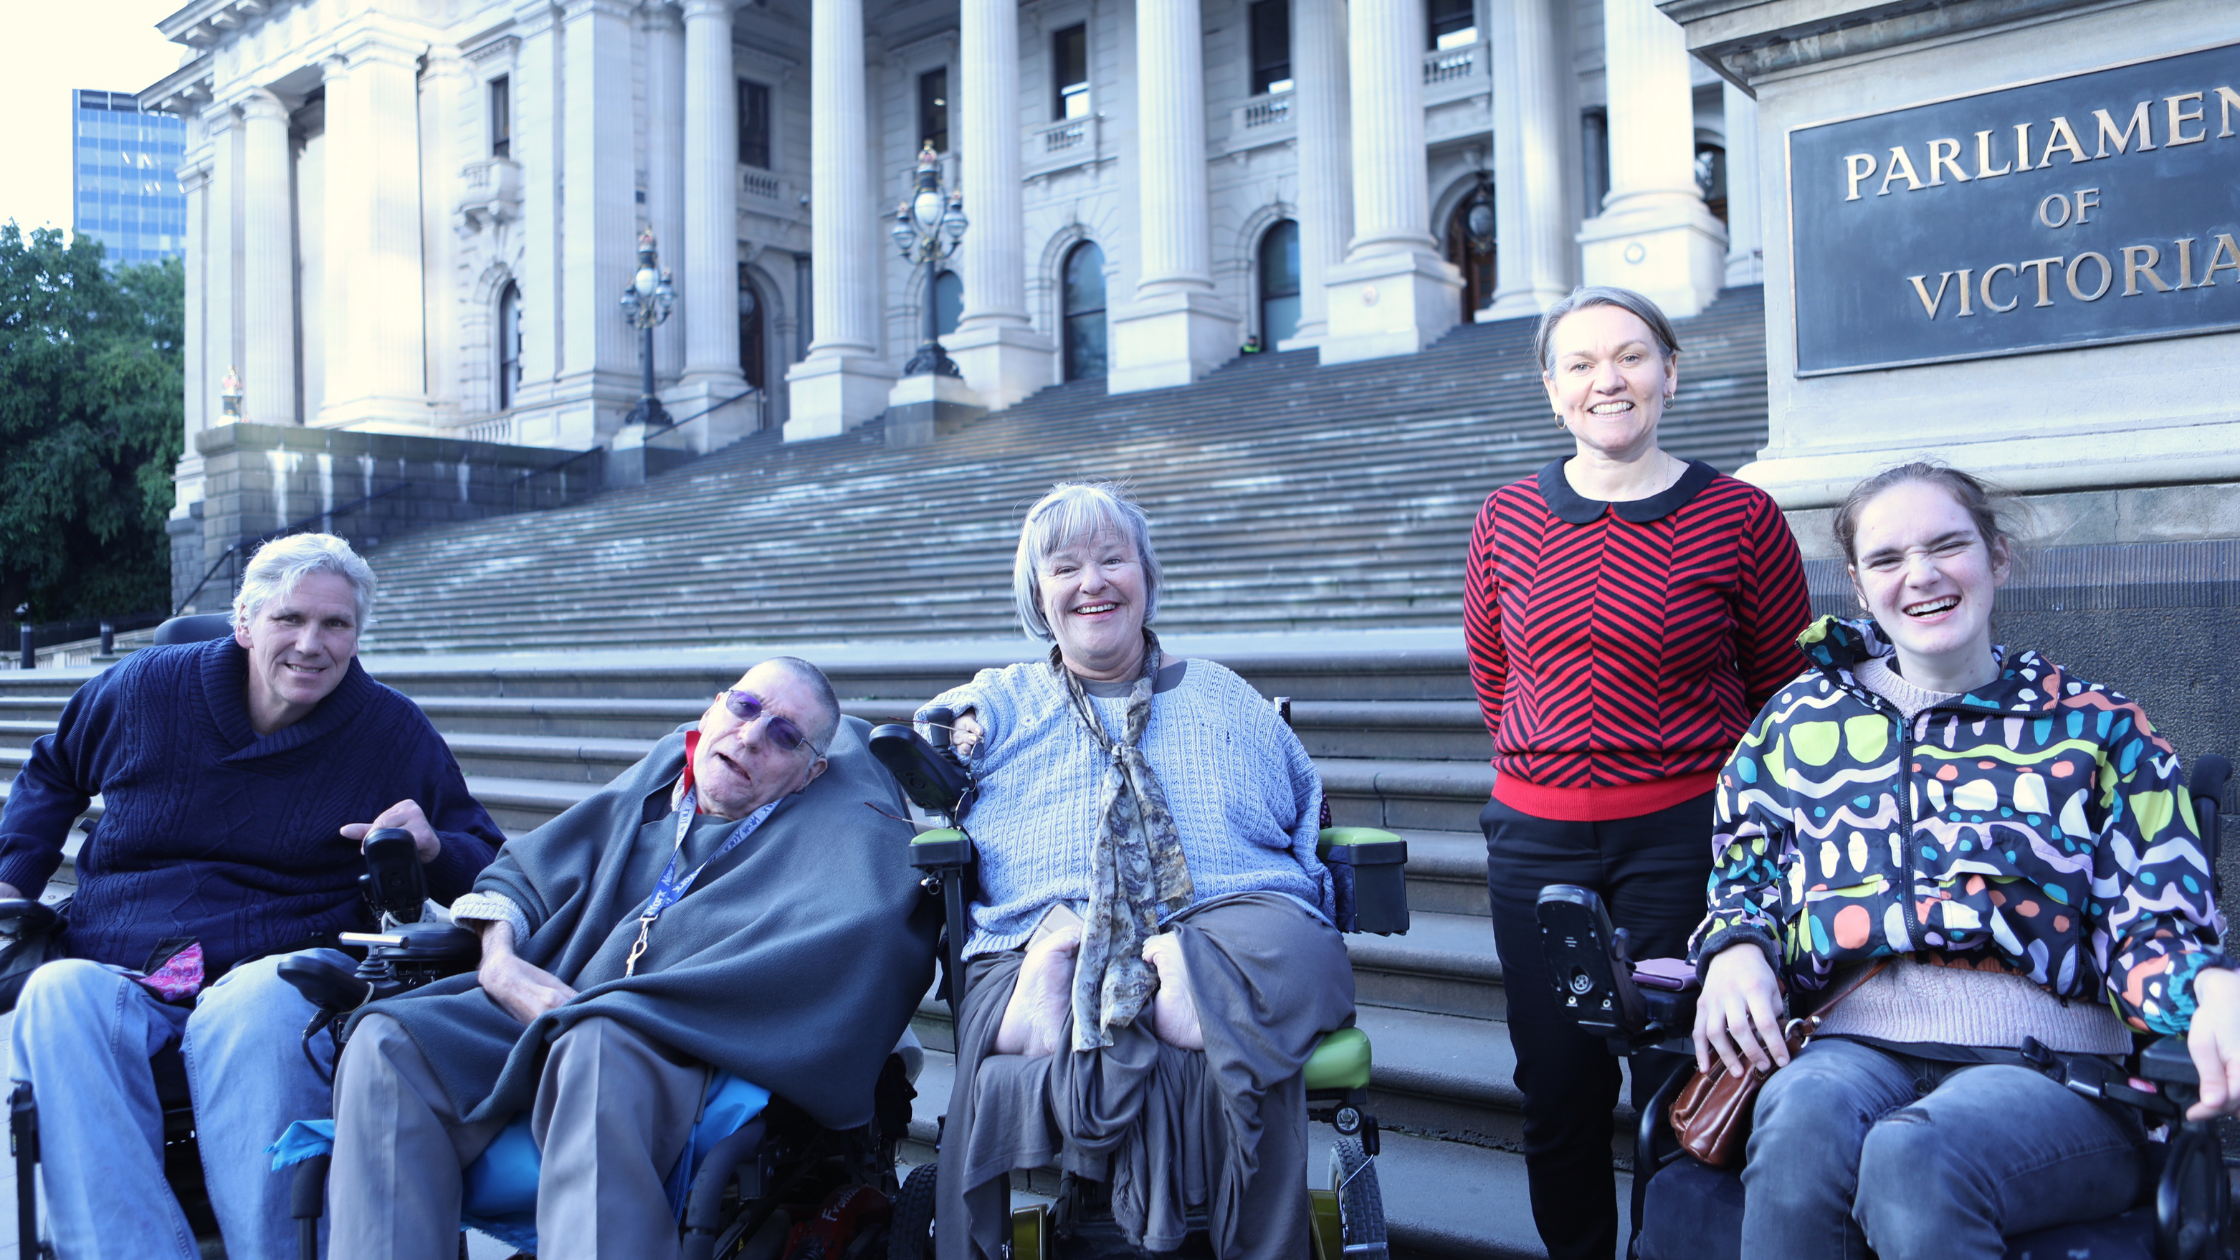 L-R: DRC Secretary Martin Leckey, DRC CoM Member Frank Hall-Bentick, DRC Chairperson Mary Henley-Collopy, DRC Executive Officer Kerri Cassidy, DRC Member Stella Barton lined up at the base of the steps of the Victorian Parliament.